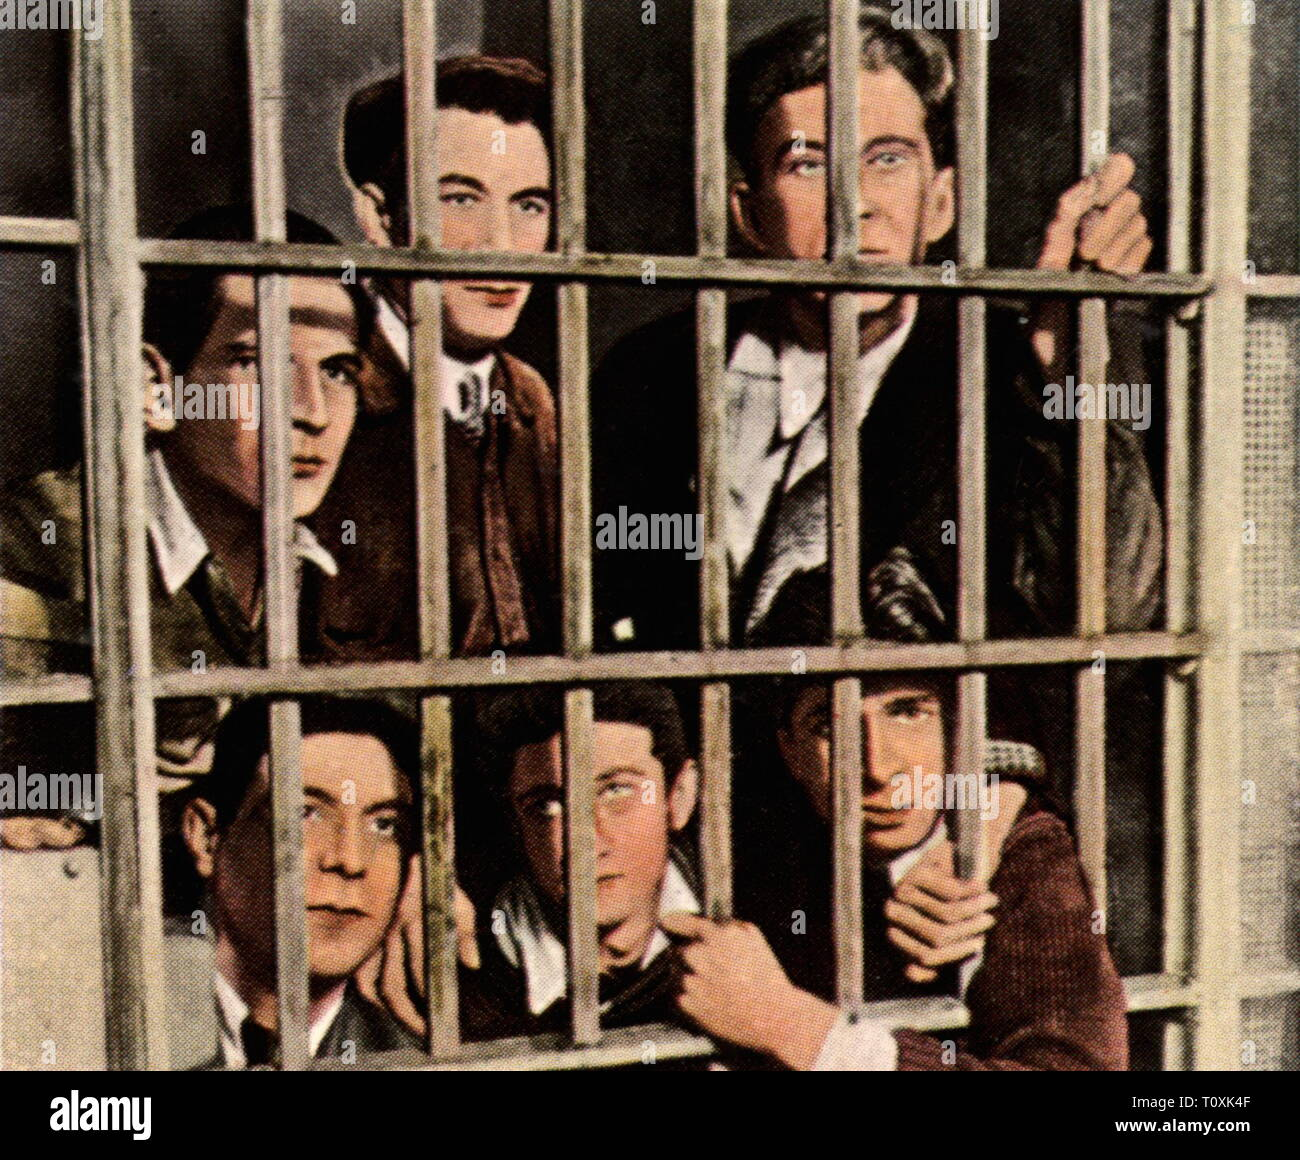 justice, penitentiary system, prison, unemployed who participated in riots are waiting for their trial, USA, 1932, coloured photograph, cigarette card, series 'Die Nachkriegszeit', 1935, unemployment, economic crisis, economic crunch, economic crises, economic crunches, world depression, world depressions, crisis, crises, captive, prisoner, prisoners, 20th century, 1930s, prison, prisons, jailhouse, jail, jails, unemployed, nonworker, workless, unemployed people, riot, riots, participate, partake, participating, partaking, USA, United States of A, Additional-Rights-Clearance-Info-Not-Available - Stock Image